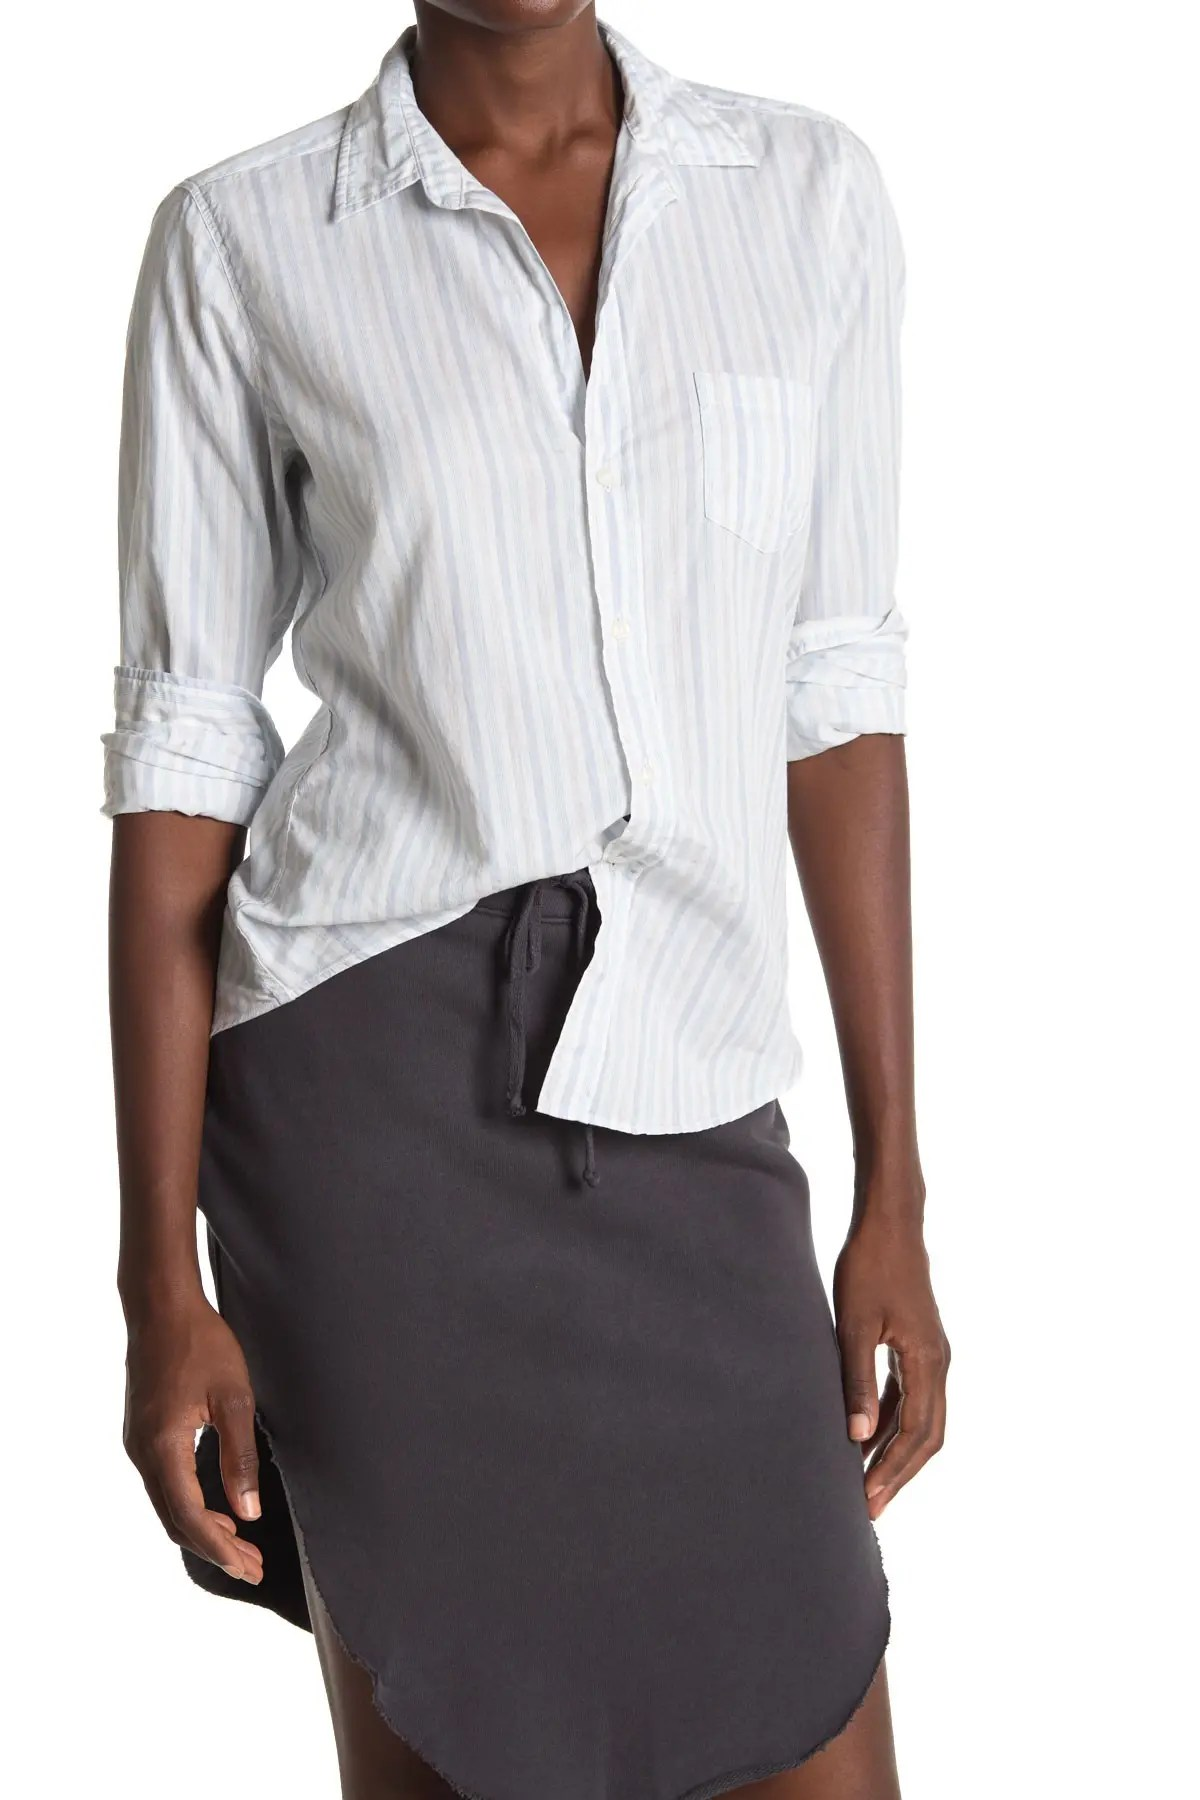 frank eileen barry striped woven collared shirt nordstrom rack